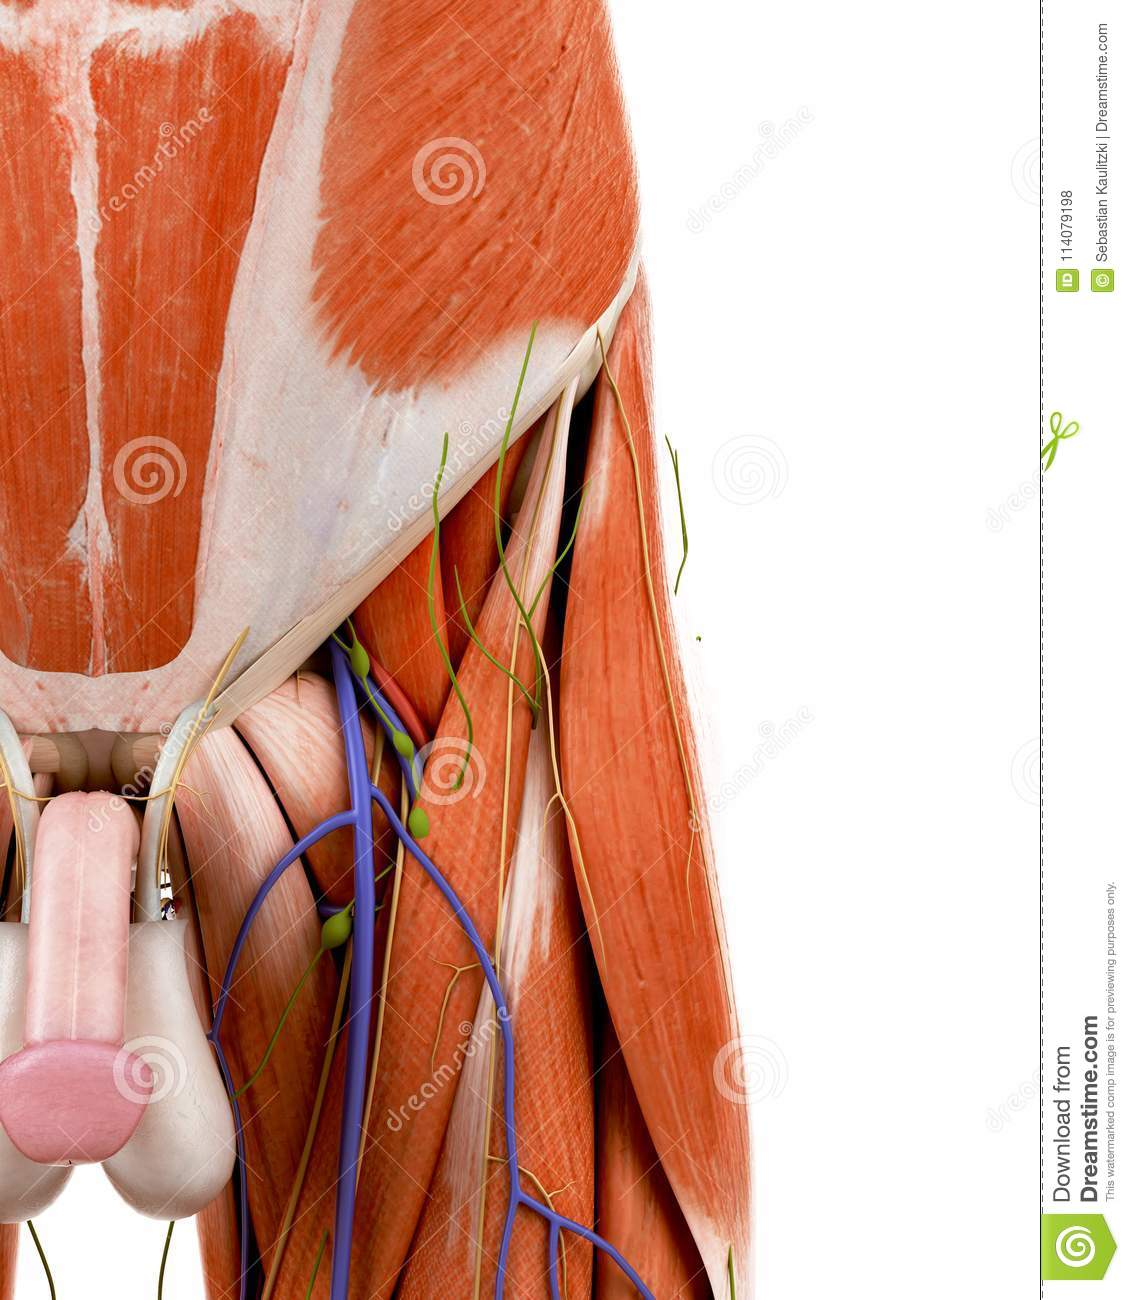 The Human Groin Anatomy Stock Illustration Illustration Of Penis